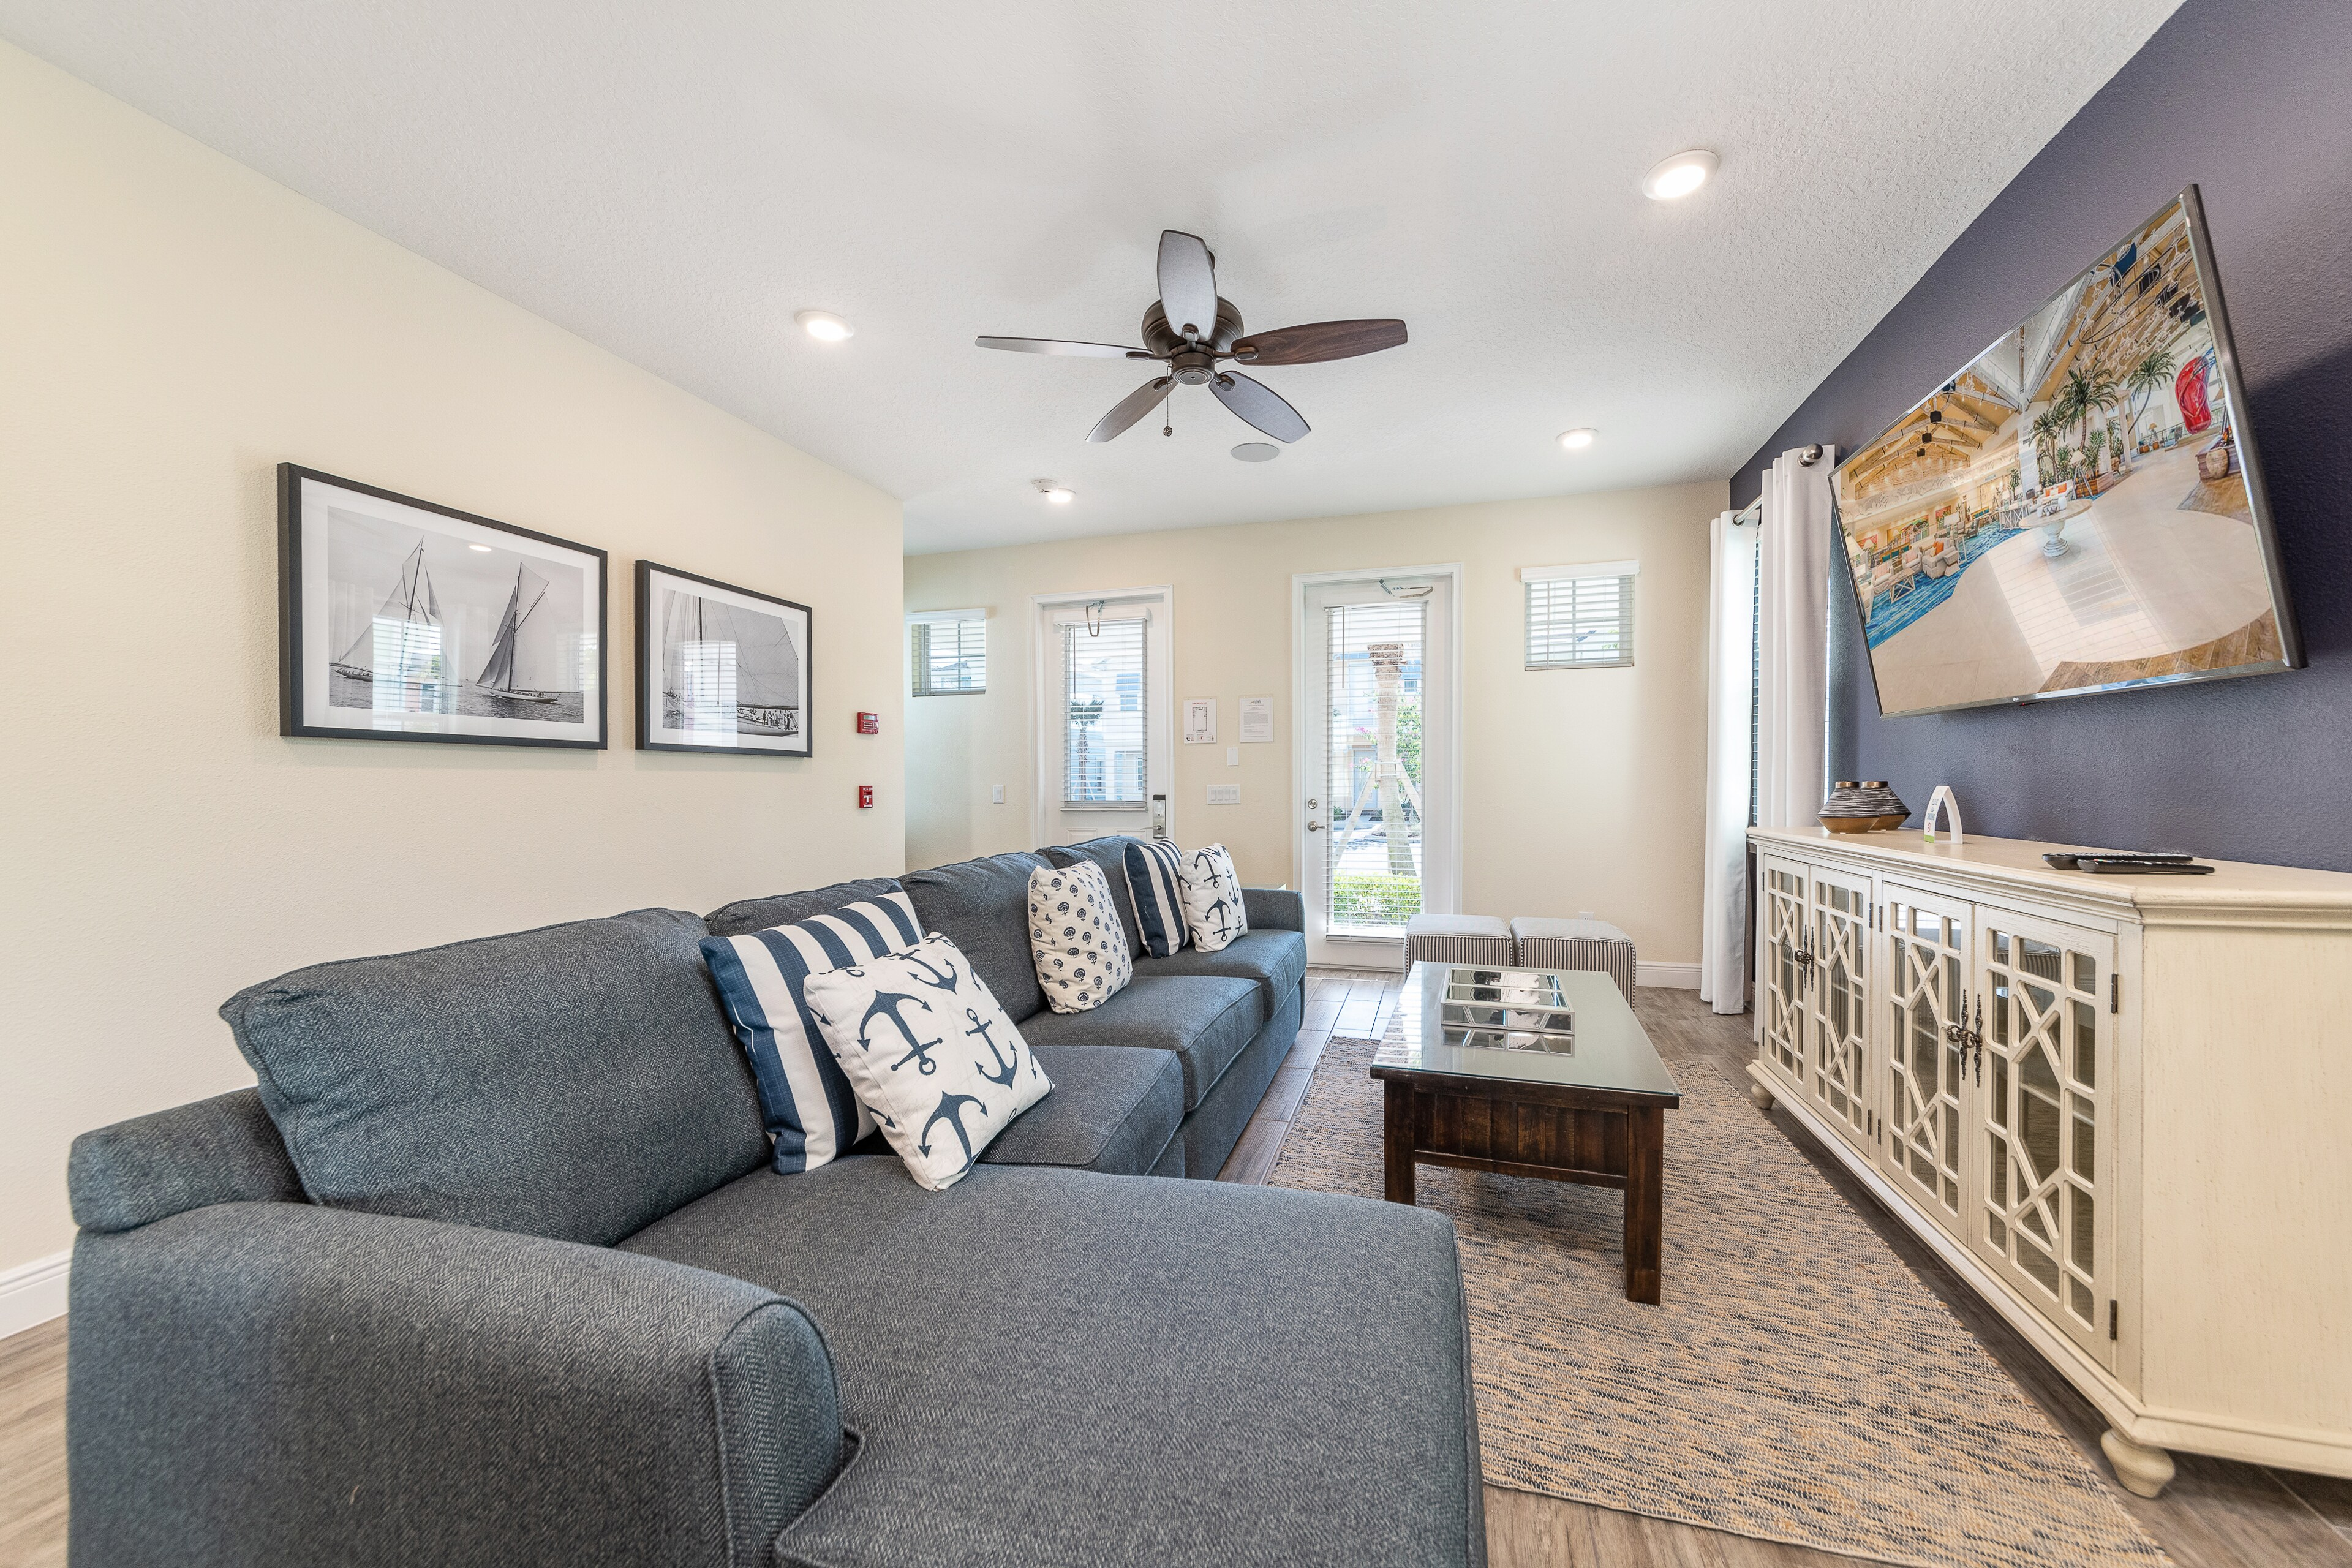 Property Image 2 - Cozy Cottage with Balcony views near Disney